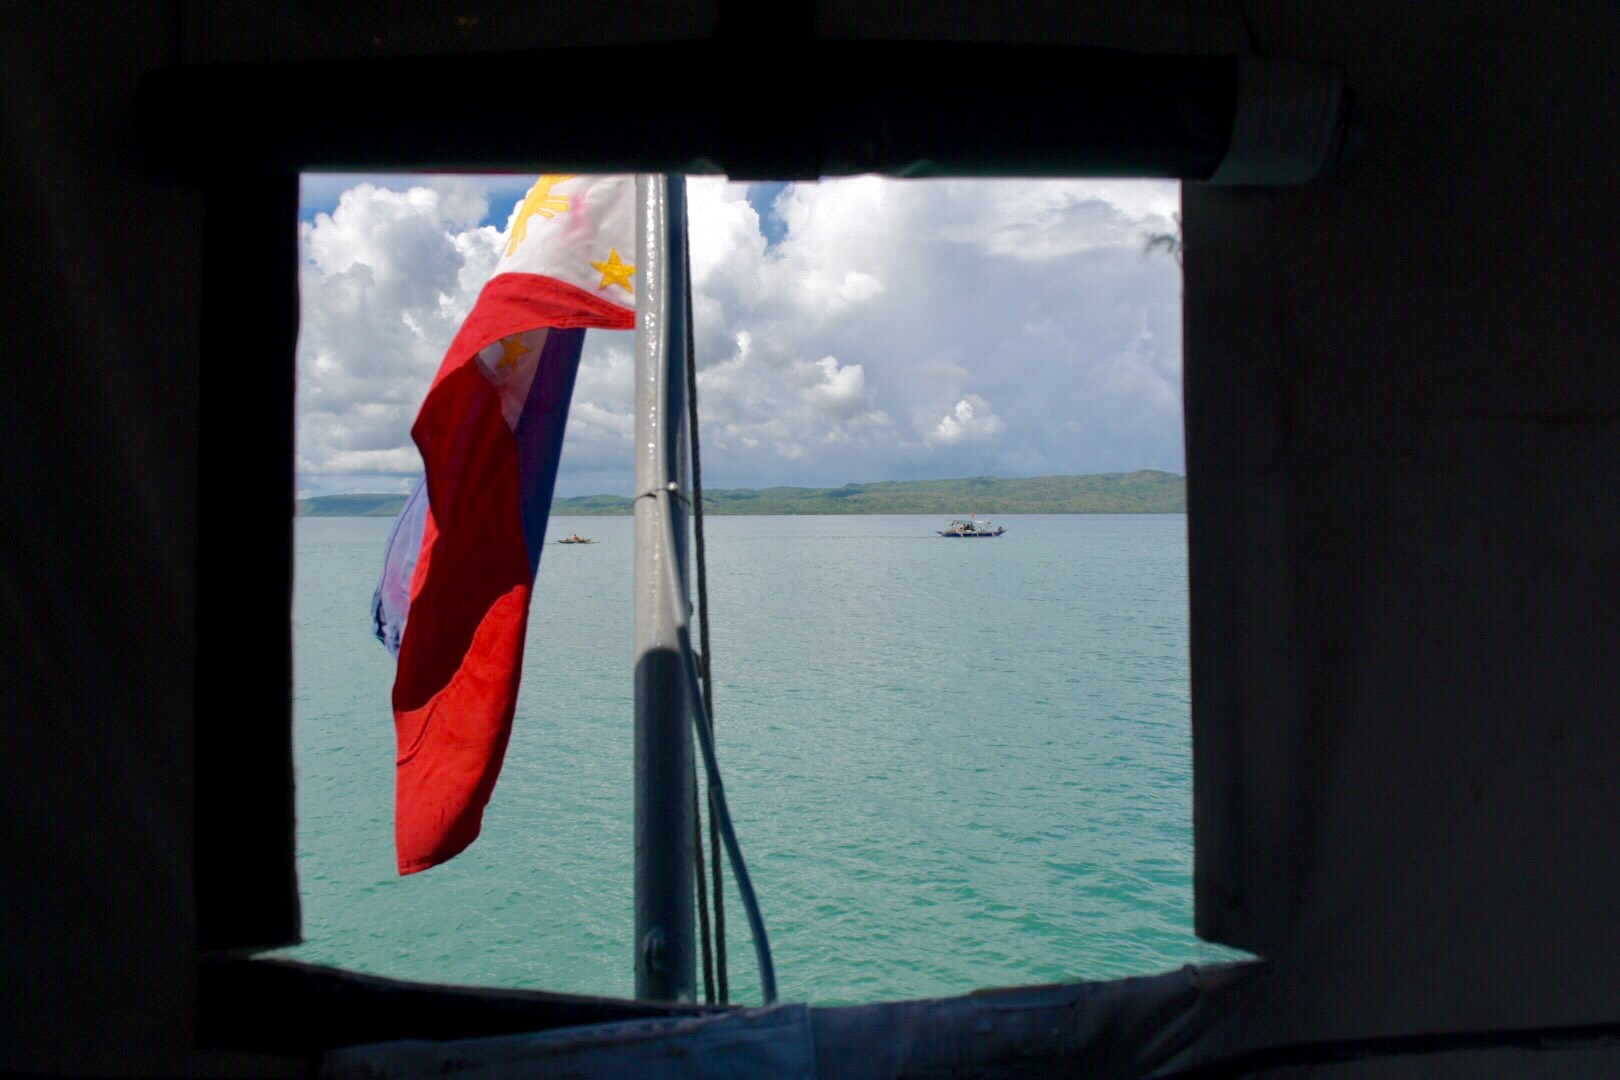 Sovereignty vs sovereign rights: What do we have in West PH Sea?